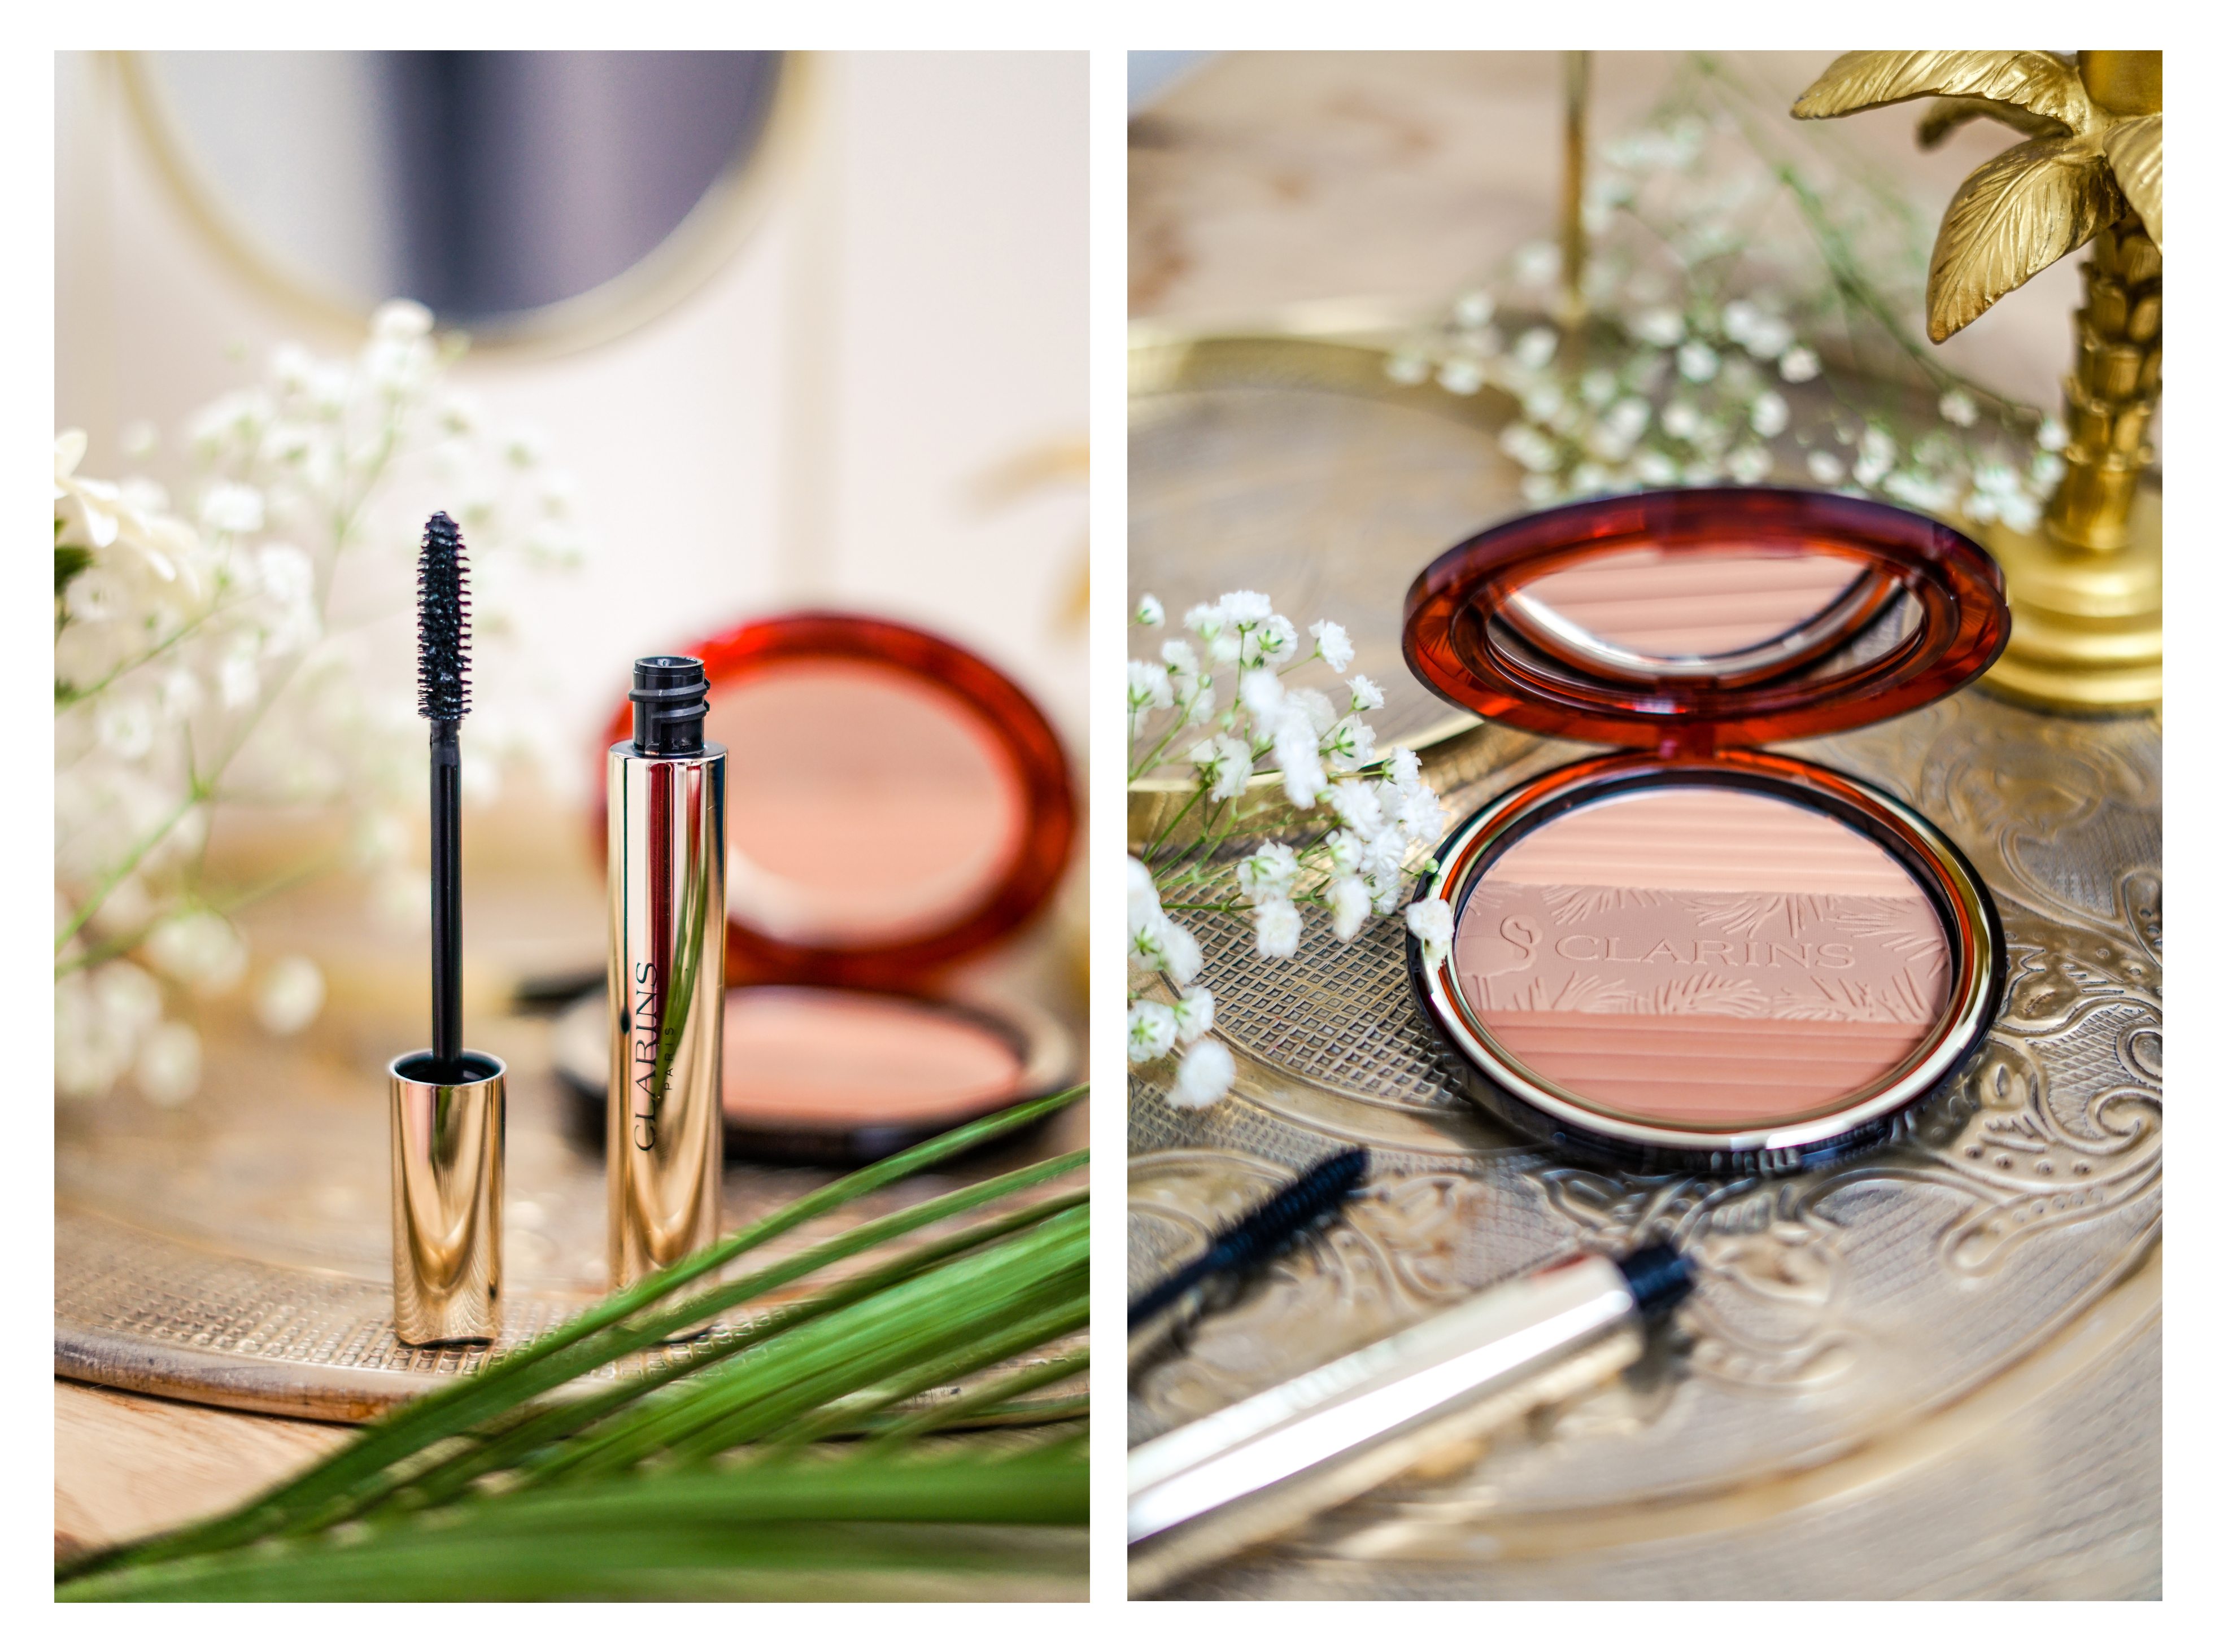 maquillage clarins été printemps make up tiboudnez